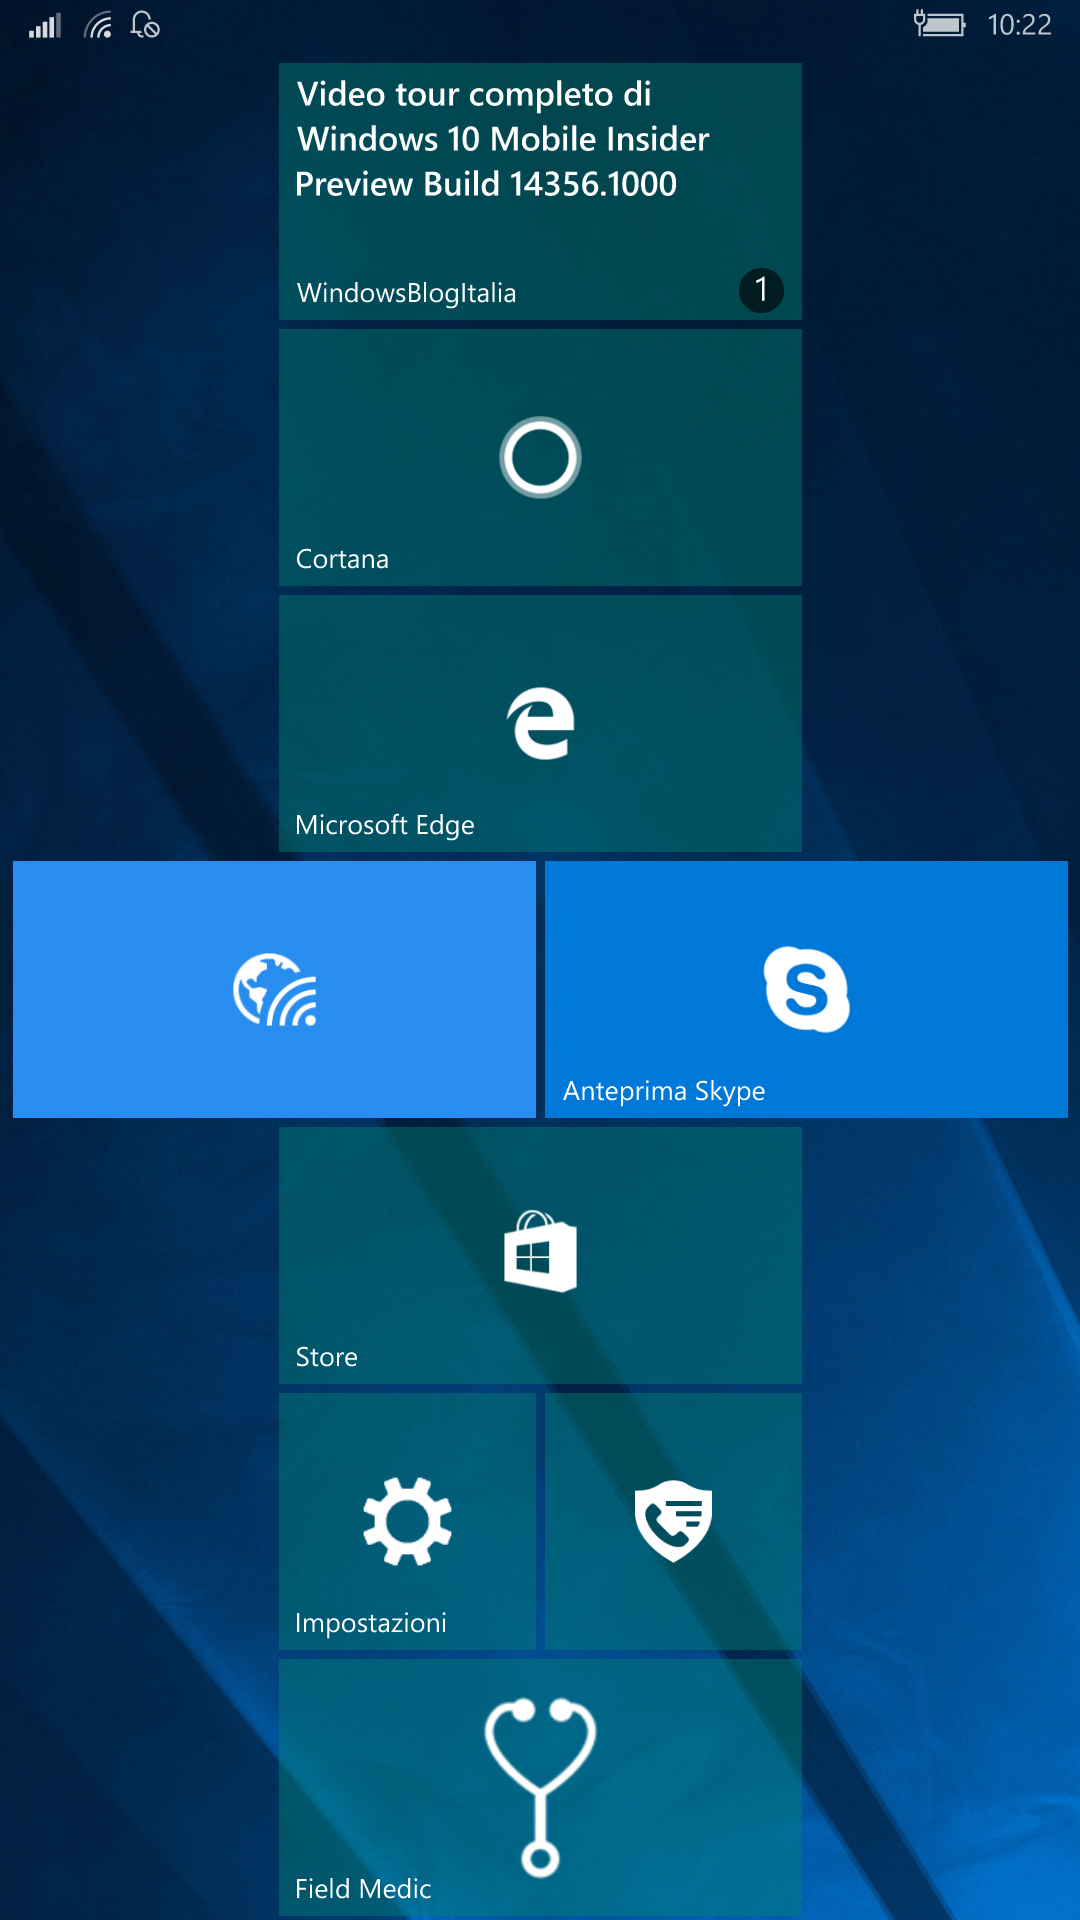 Nuovo wallpaper - Windows 10 Mobile